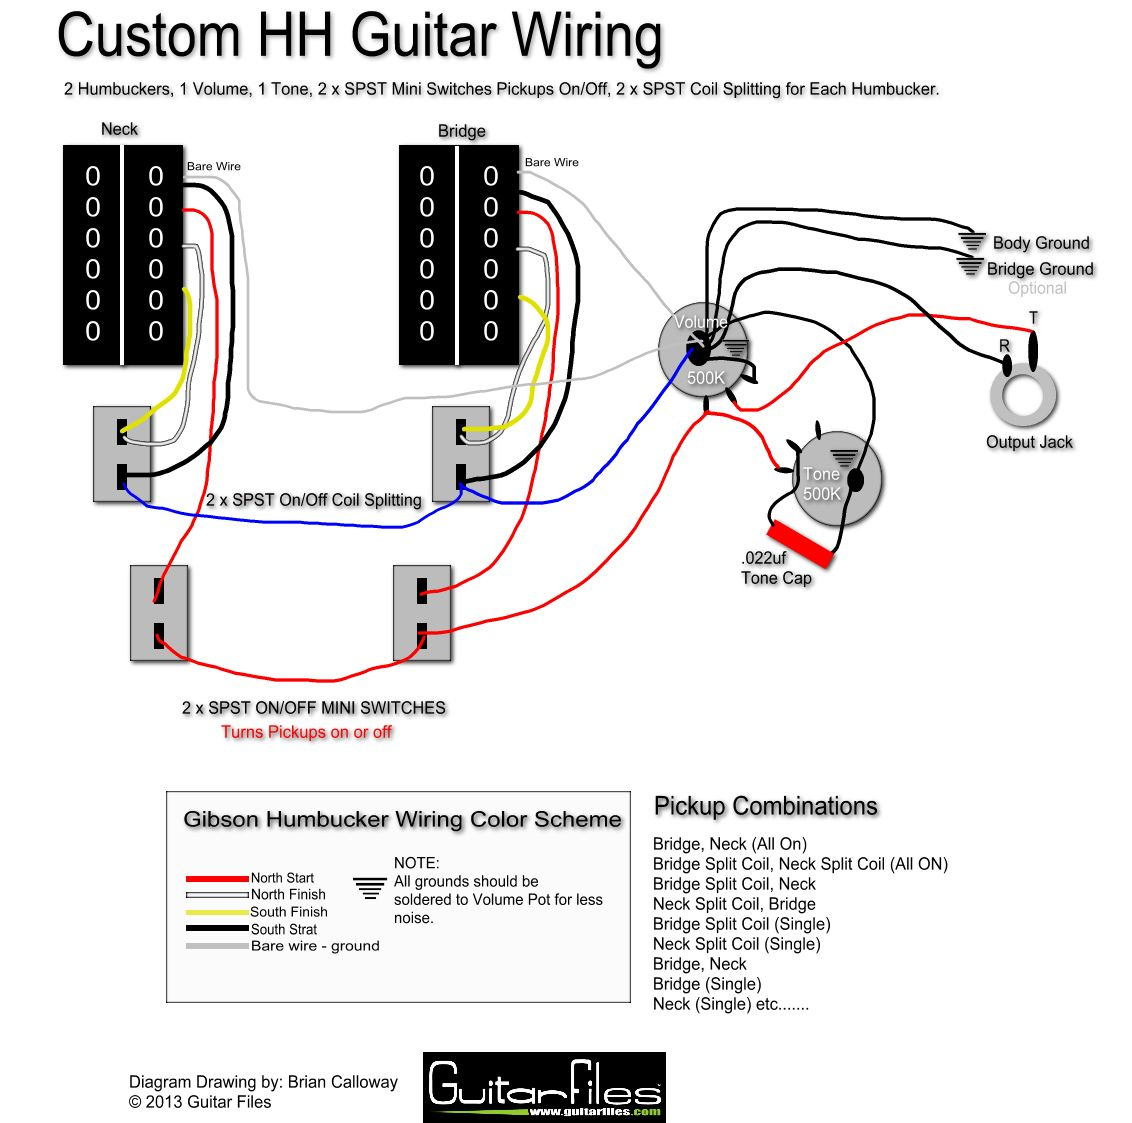 Guitar Wiring Diagram 1 Humbucker